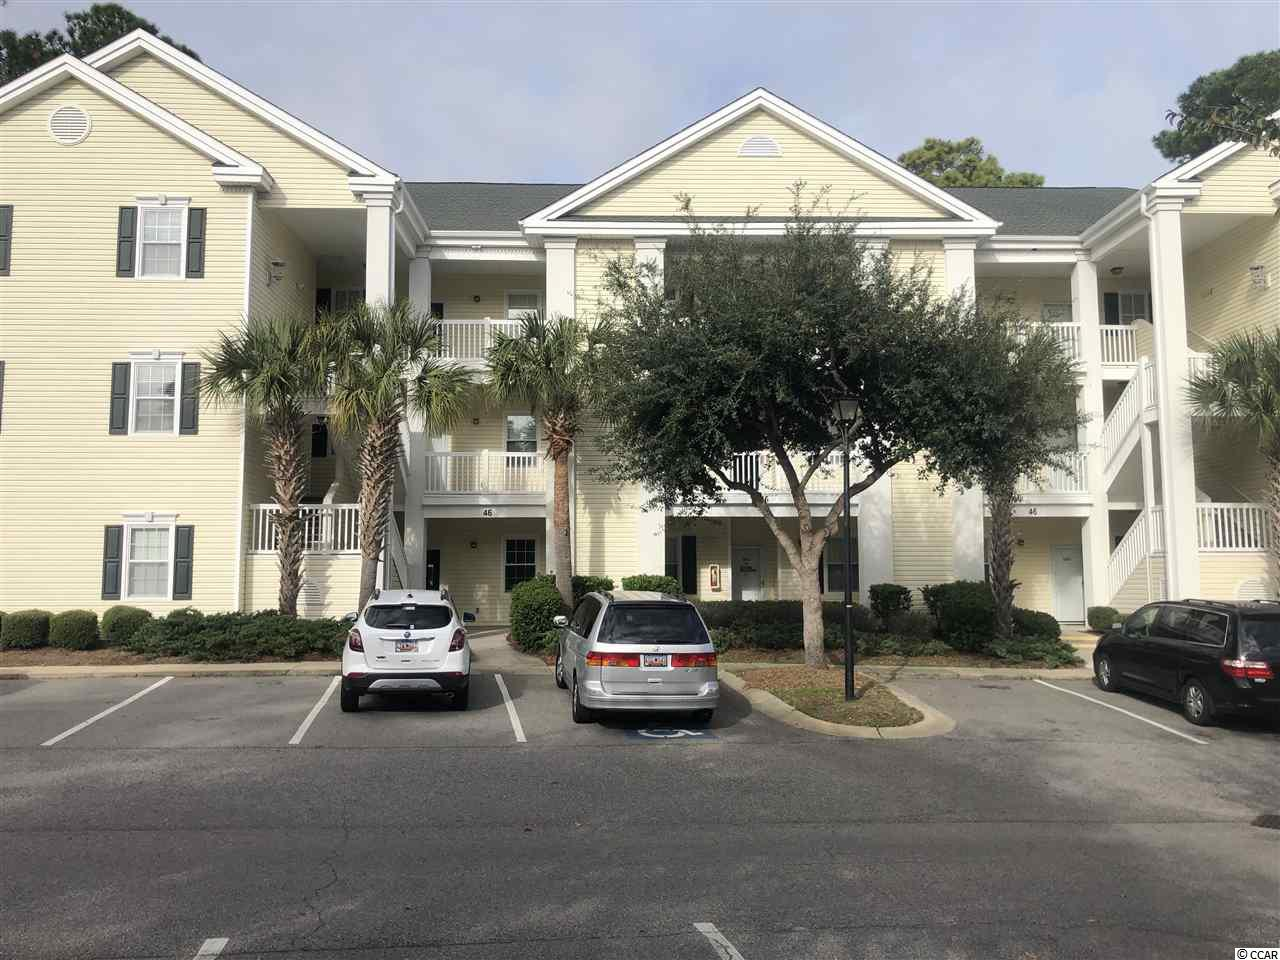 Come check out this gorgeous, fully furnished 2 bedroom/2 bathroom condo in NMB!!  This pristine unit features 12' vaulted ceilings in the living room, offering plenty of natural light, a spacious screened in porch, tray ceilings in the master bedroom, open floor plan, and more!!  Upgrades include new LED light fixtures in the kitchen & a new faucet, beautiful tiled shower in the guest bathroom, & new washer & dryer.  This condo also features an extra room when you first enter the unit, this can be kept as an extra bedroom for guests or it would make for a perfect office/den area. This condo has been beautifully maintained & it's truly a must see!!! The condo is located in a gated community that is just a few blocks away from the beach, it offers 6 swimming pools/hot tubs, BBQ & picnic areas, a fitness center, recreation facility, tennis courts, walking trails, & plenty of lakes & ponds. Contact your agent today to schedule a showing!!